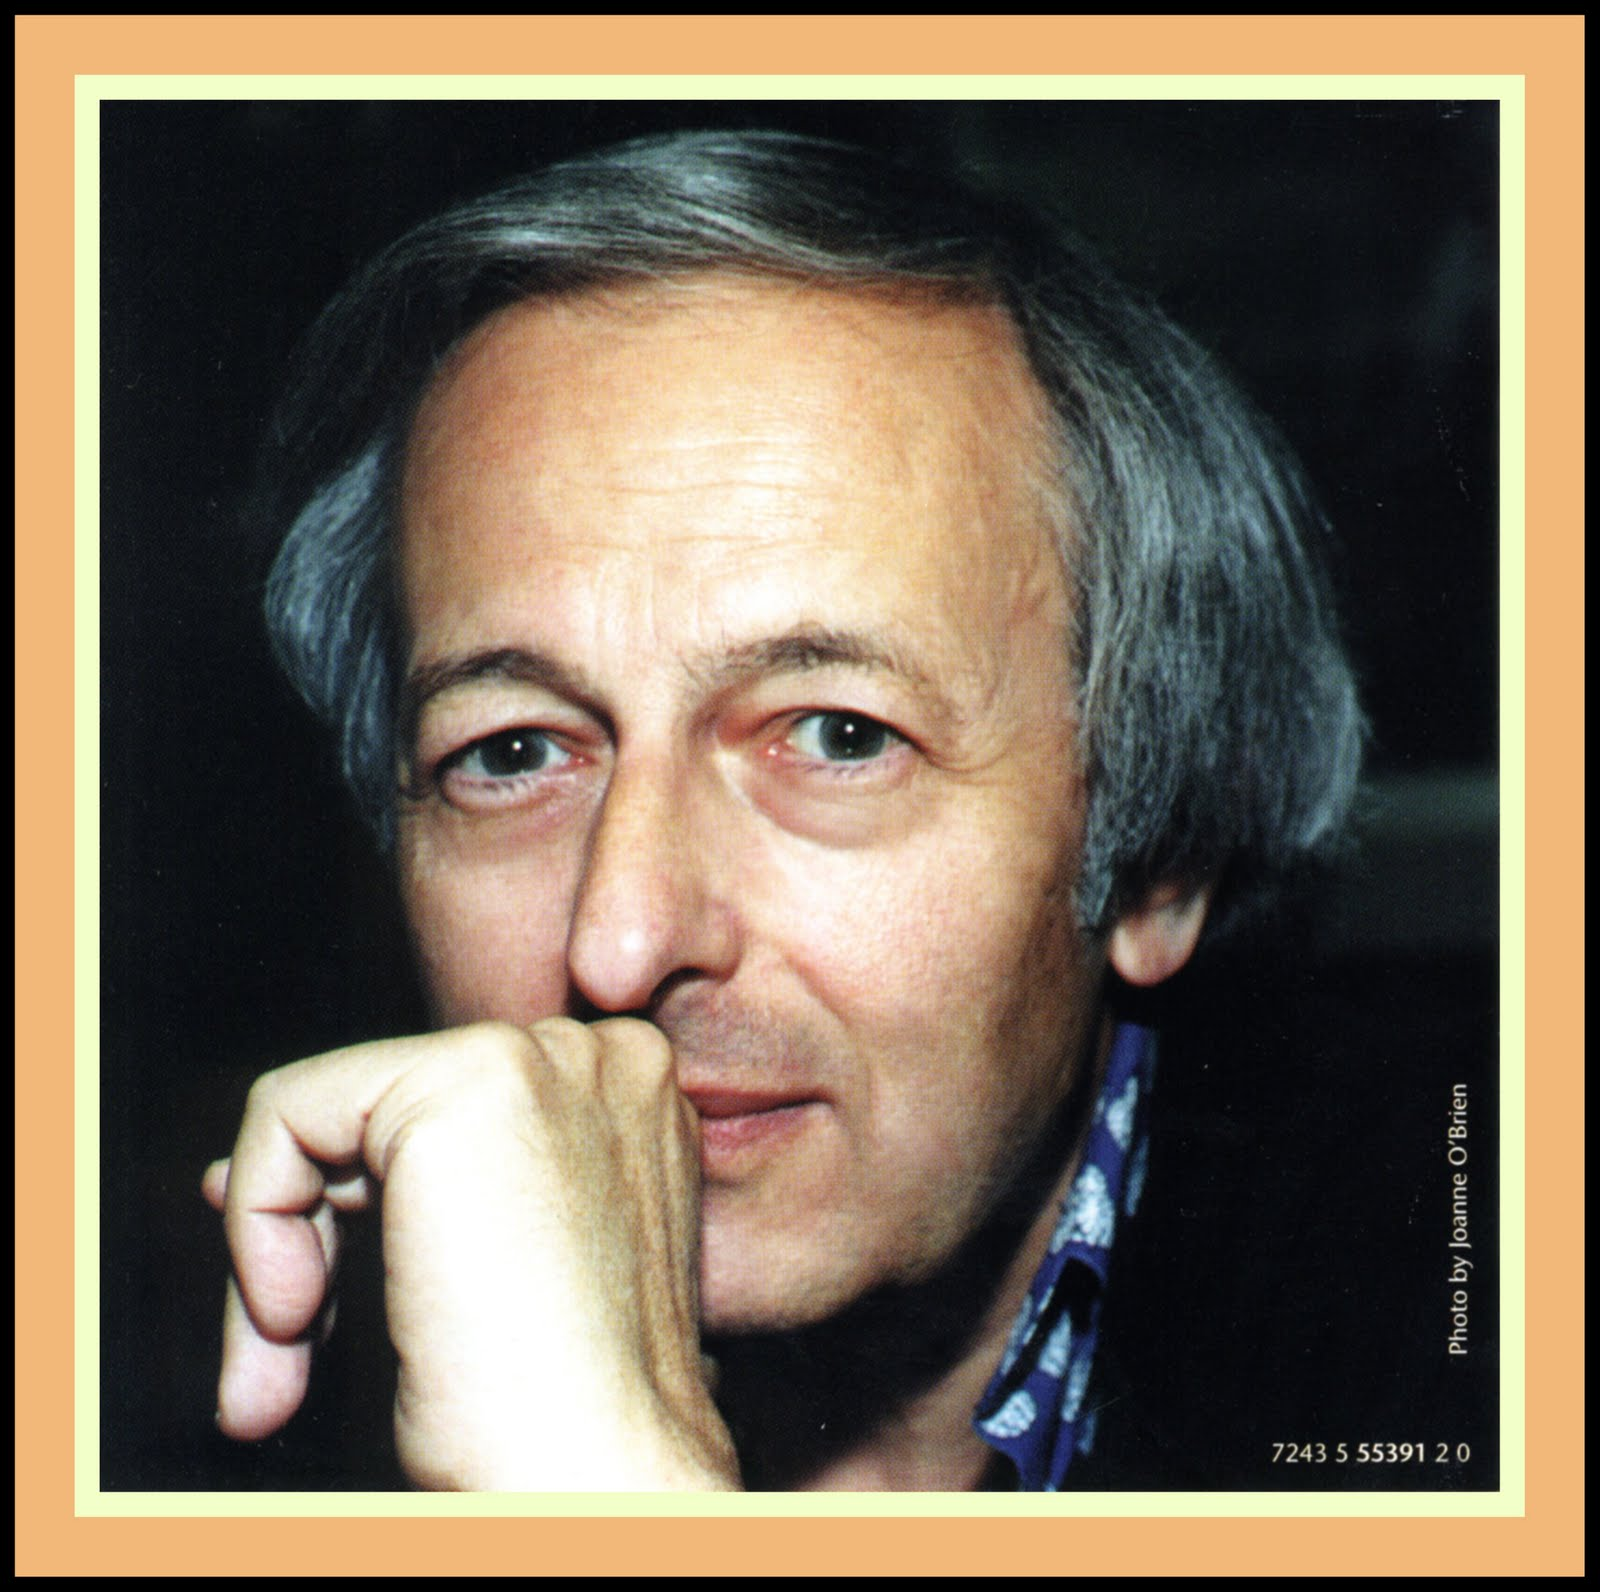 jazz profiles andre george previn kbe pianist composer  andre george previn kbe pianist composer conductor genius